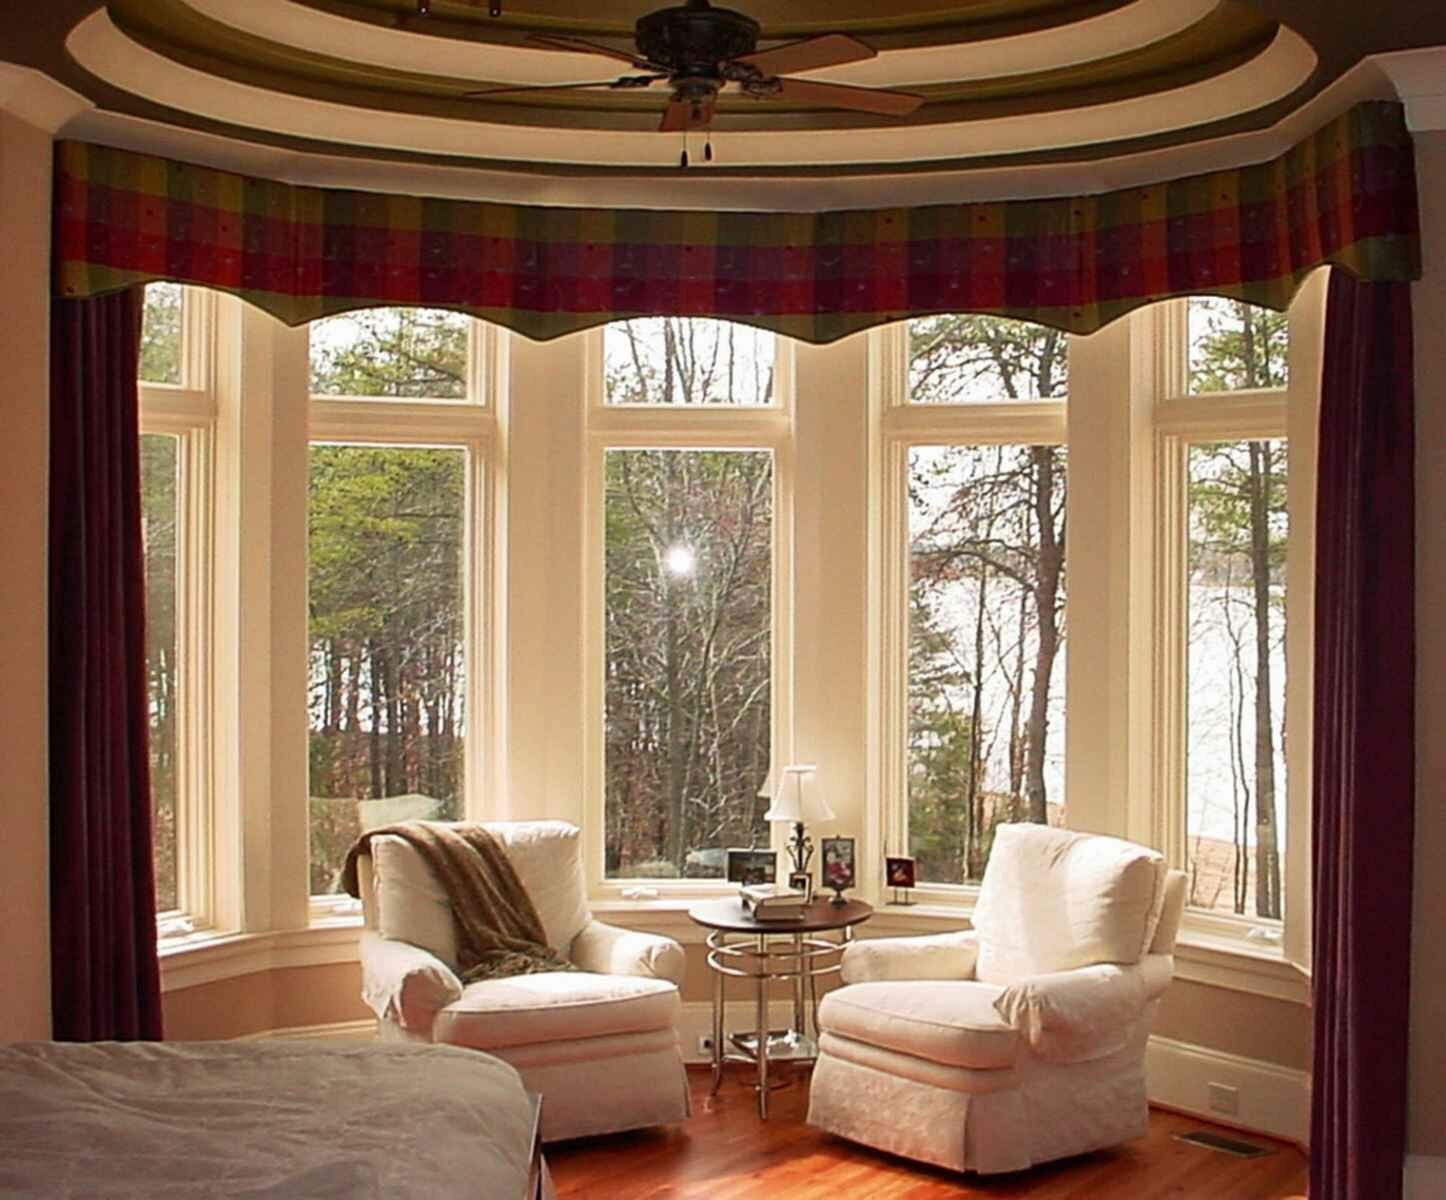 Cute Living Room Valances for Your Home Decorating Ideas: Living Room Valances | Fancy Window Valances | Livingroom Valances